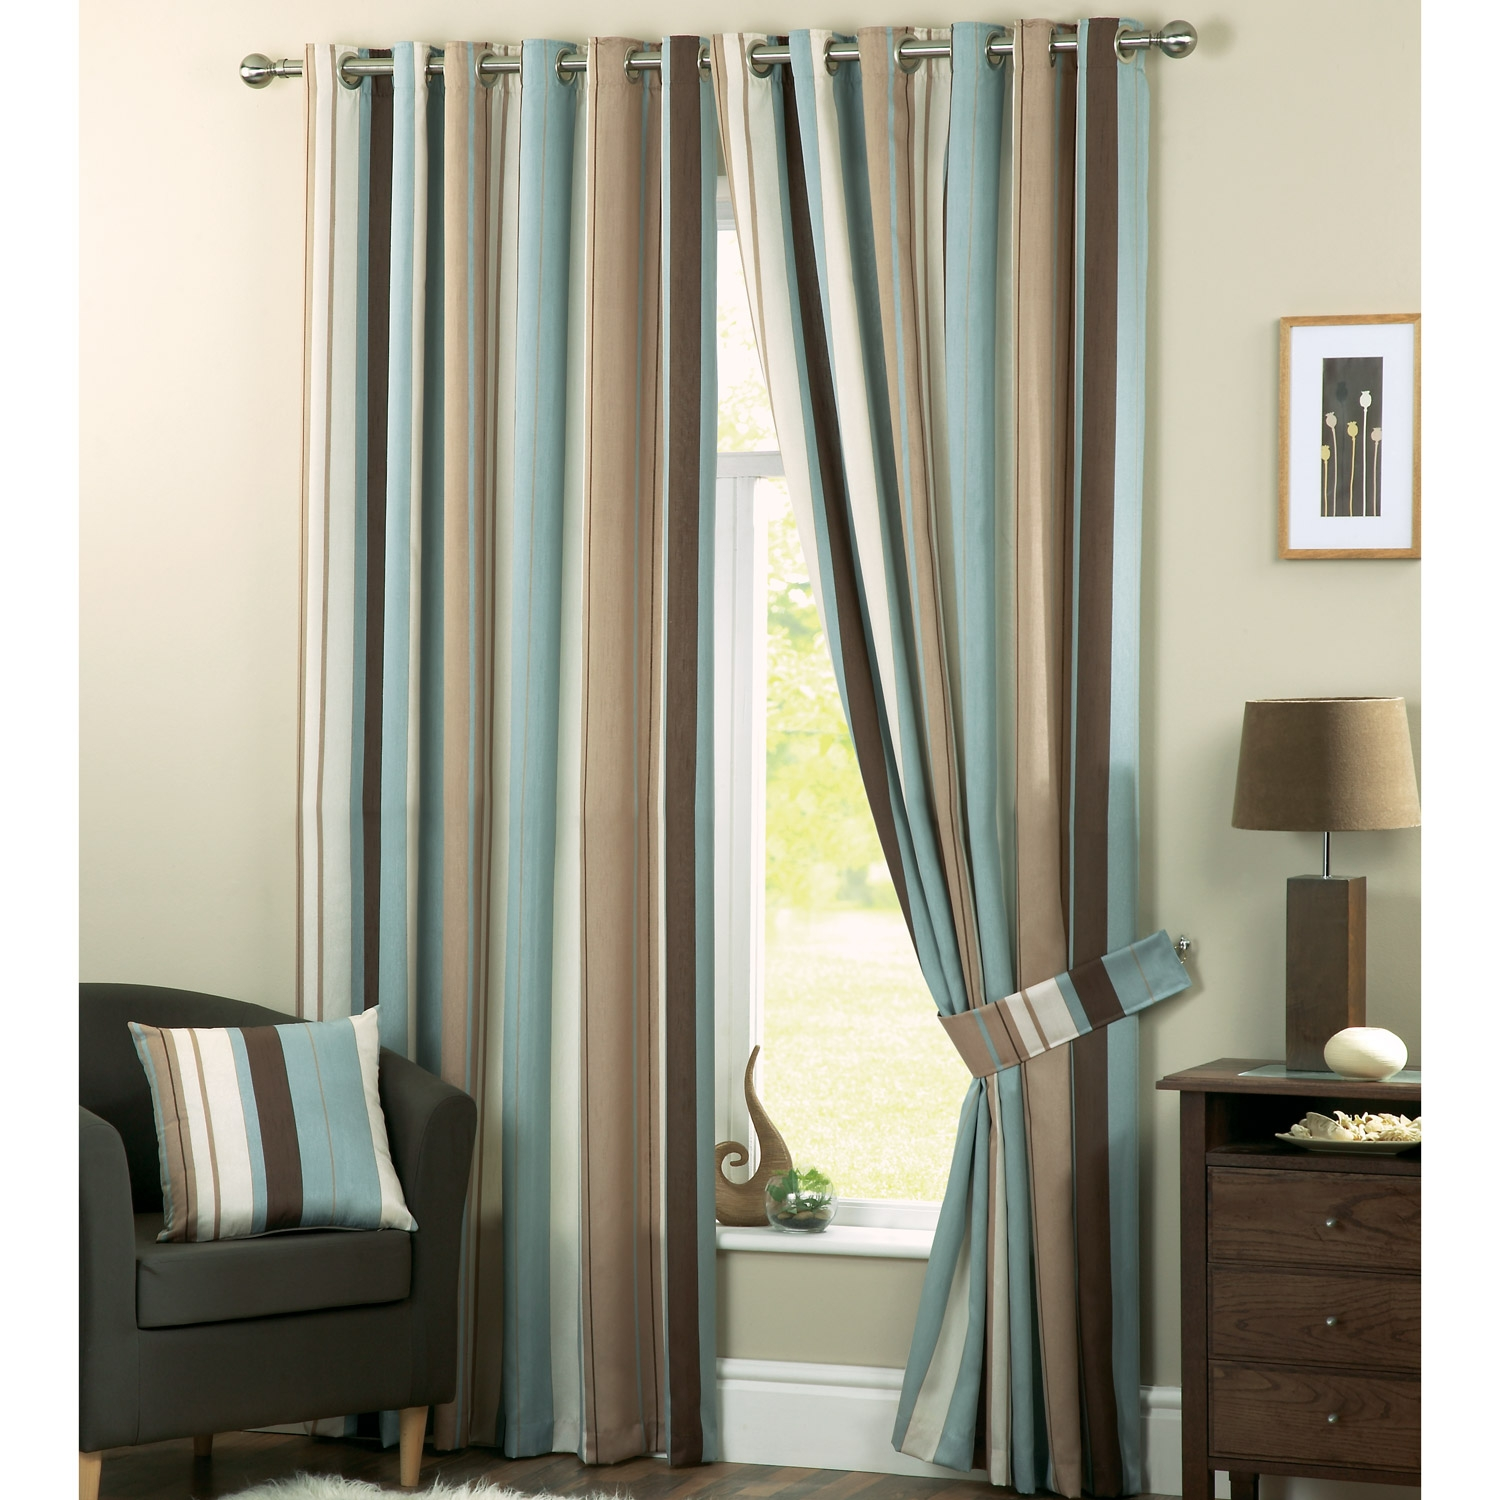 Office Drapes Duck Egg Blue Striped Curtains Annie Sloan Duck Egg For Duck Egg Blue Striped Curtains (View 4 of 15)